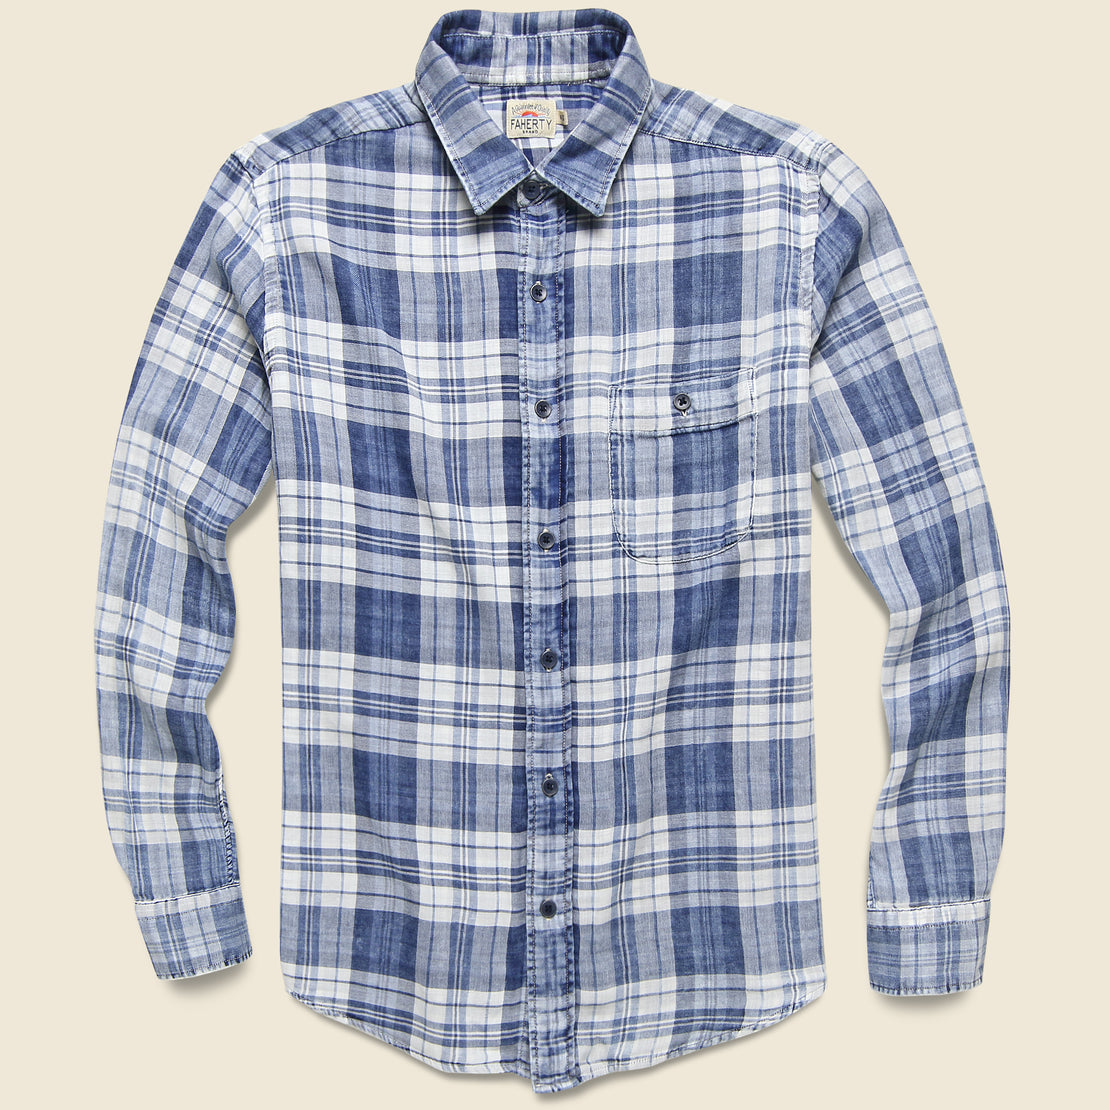 Faherty Indigo Seaview Shirt - Nautilus Plaid